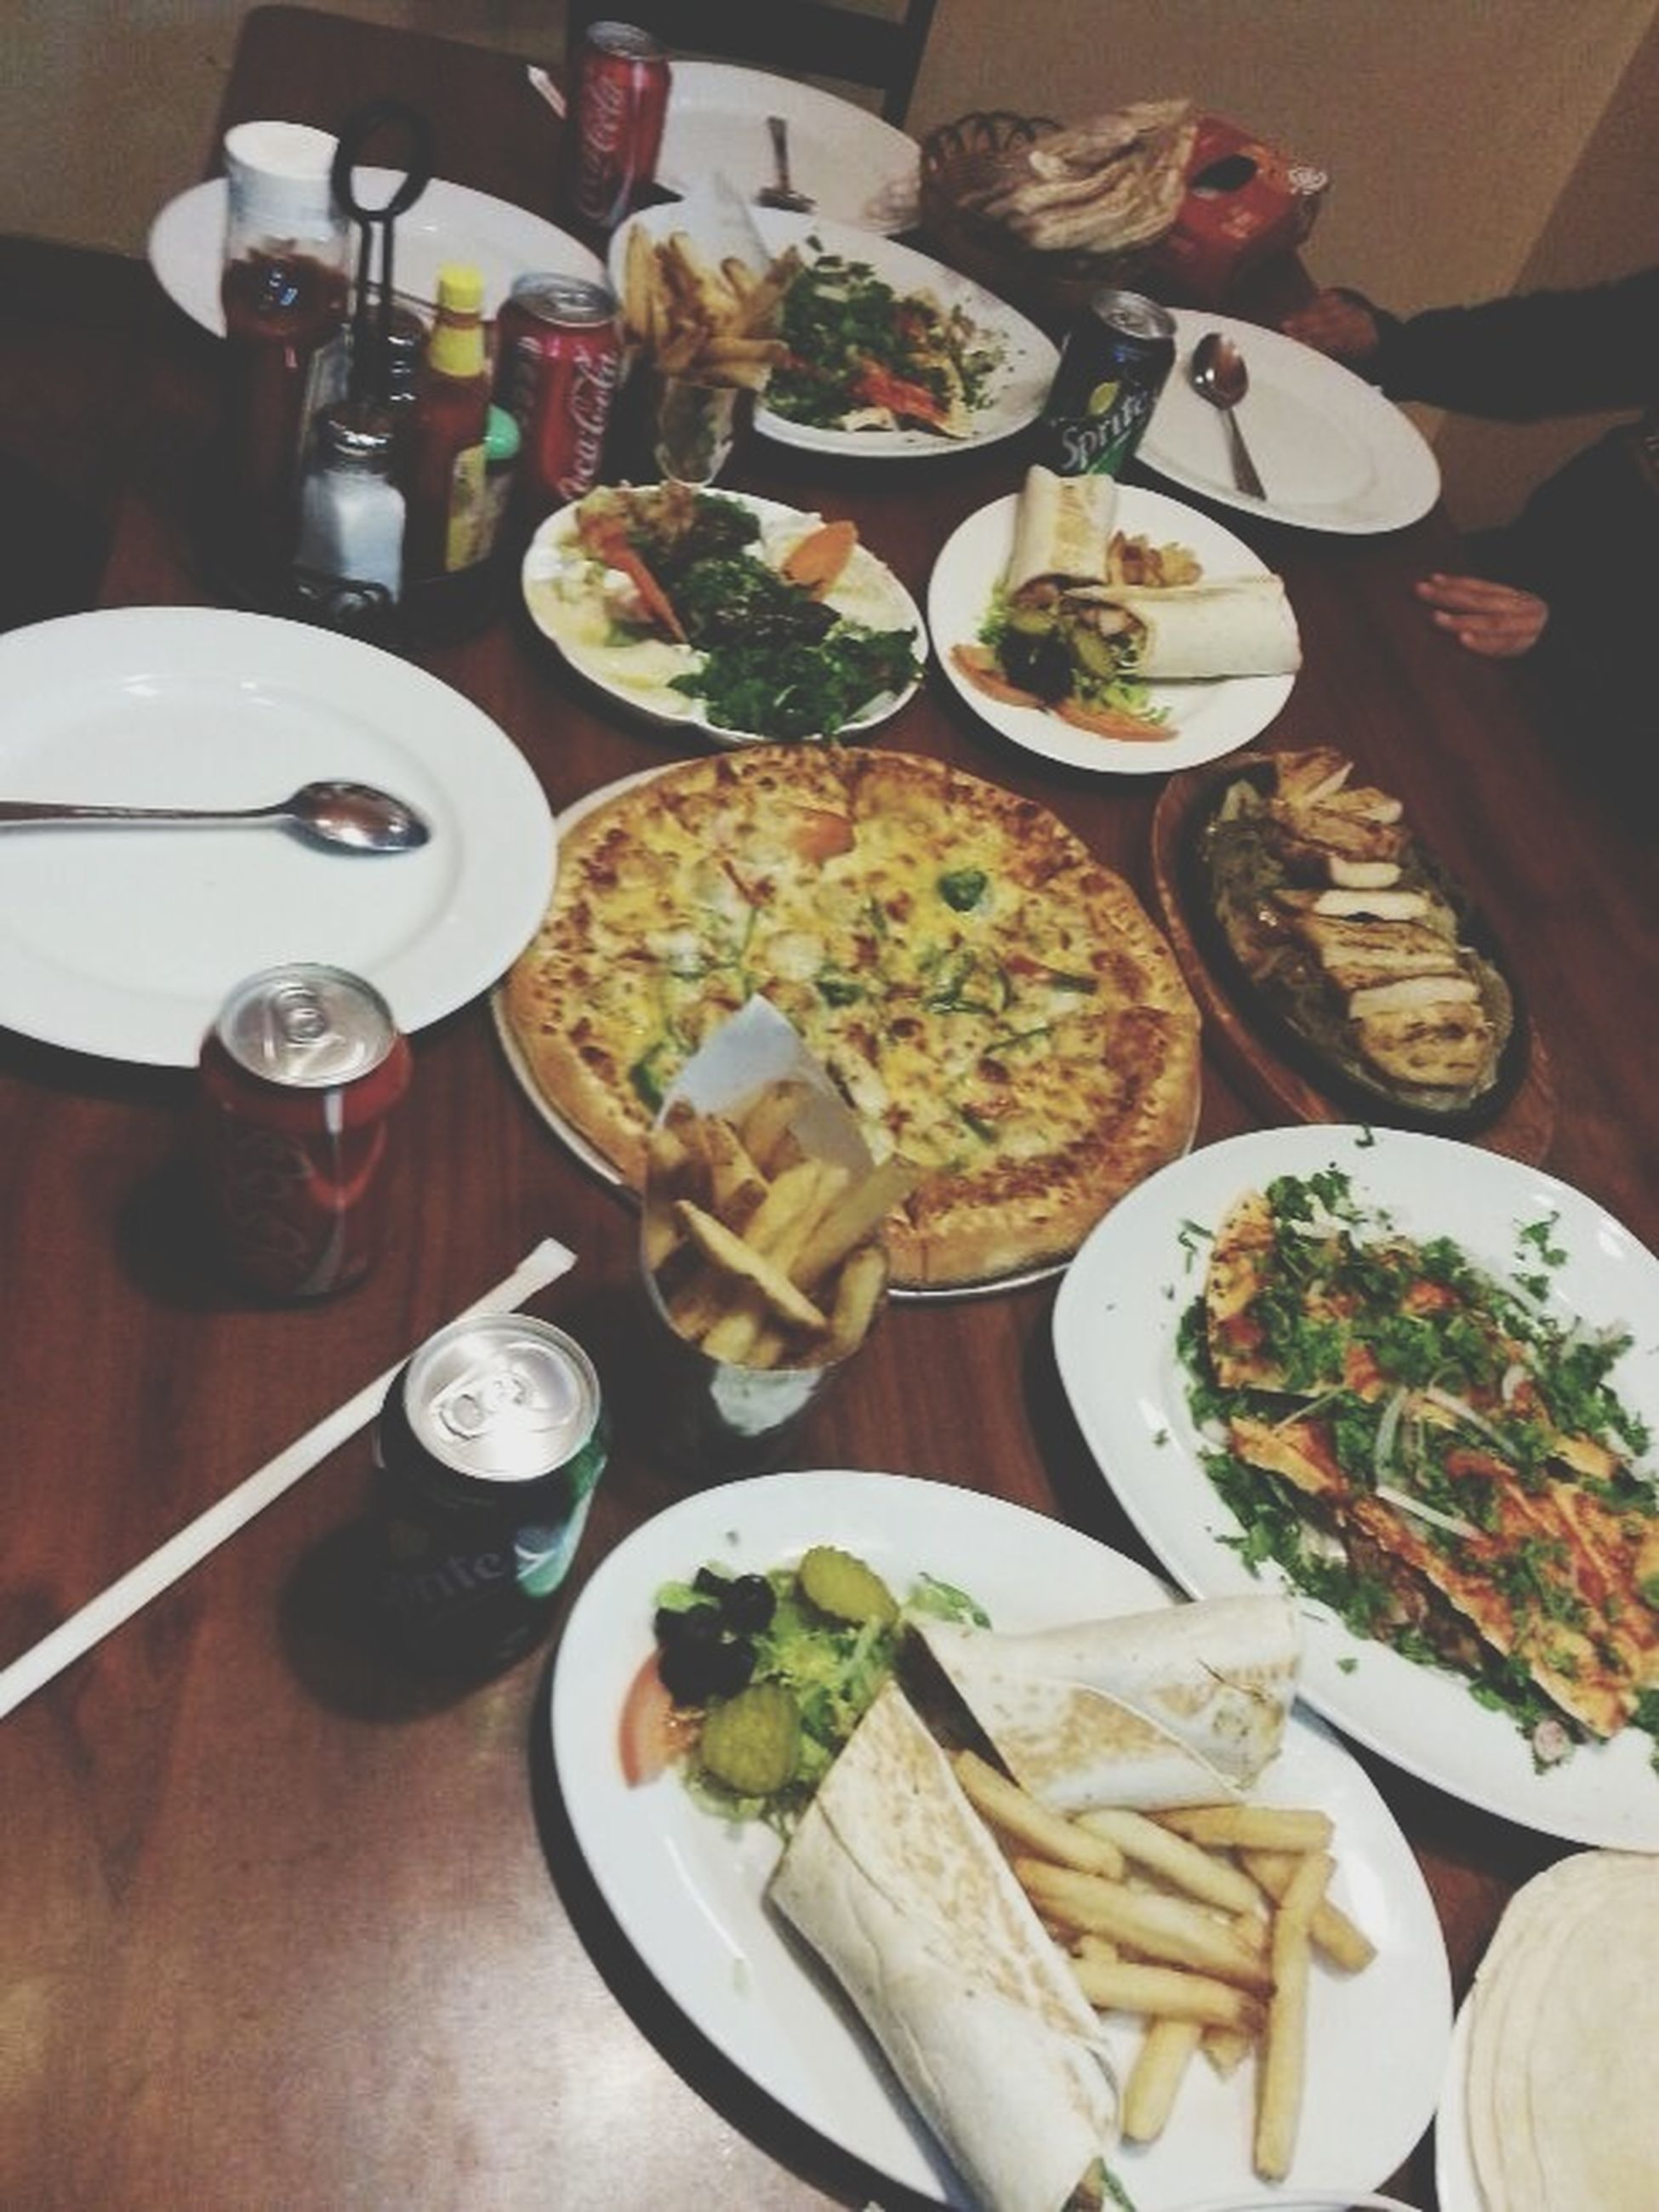 food and drink, indoors, table, food, plate, freshness, ready-to-eat, still life, healthy eating, drink, meal, high angle view, serving size, bowl, fork, served, salad, restaurant, drinking glass, refreshment